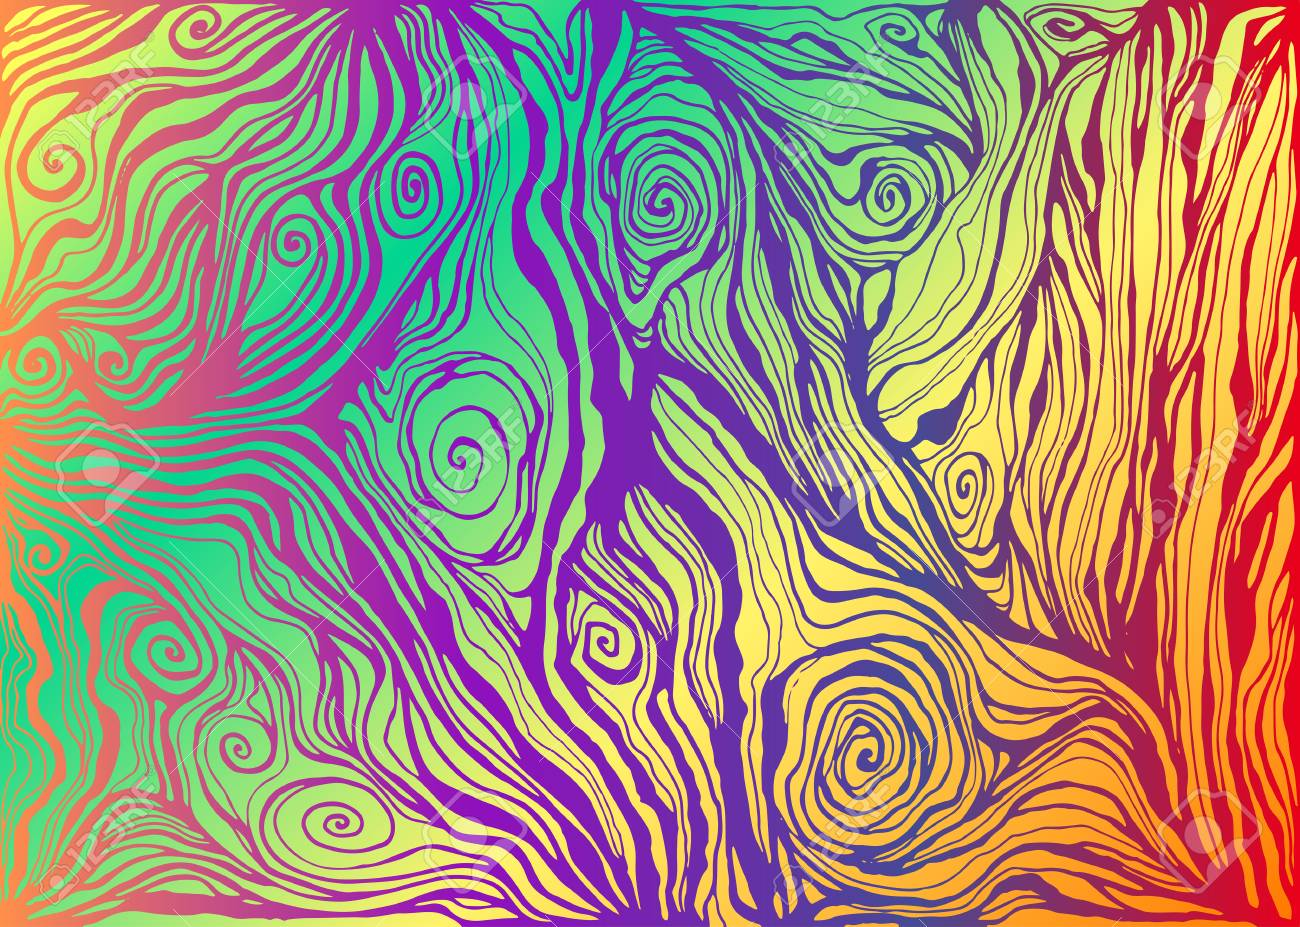 Psychedelic Colorful Art Waves Decorative Texture Vector Hand